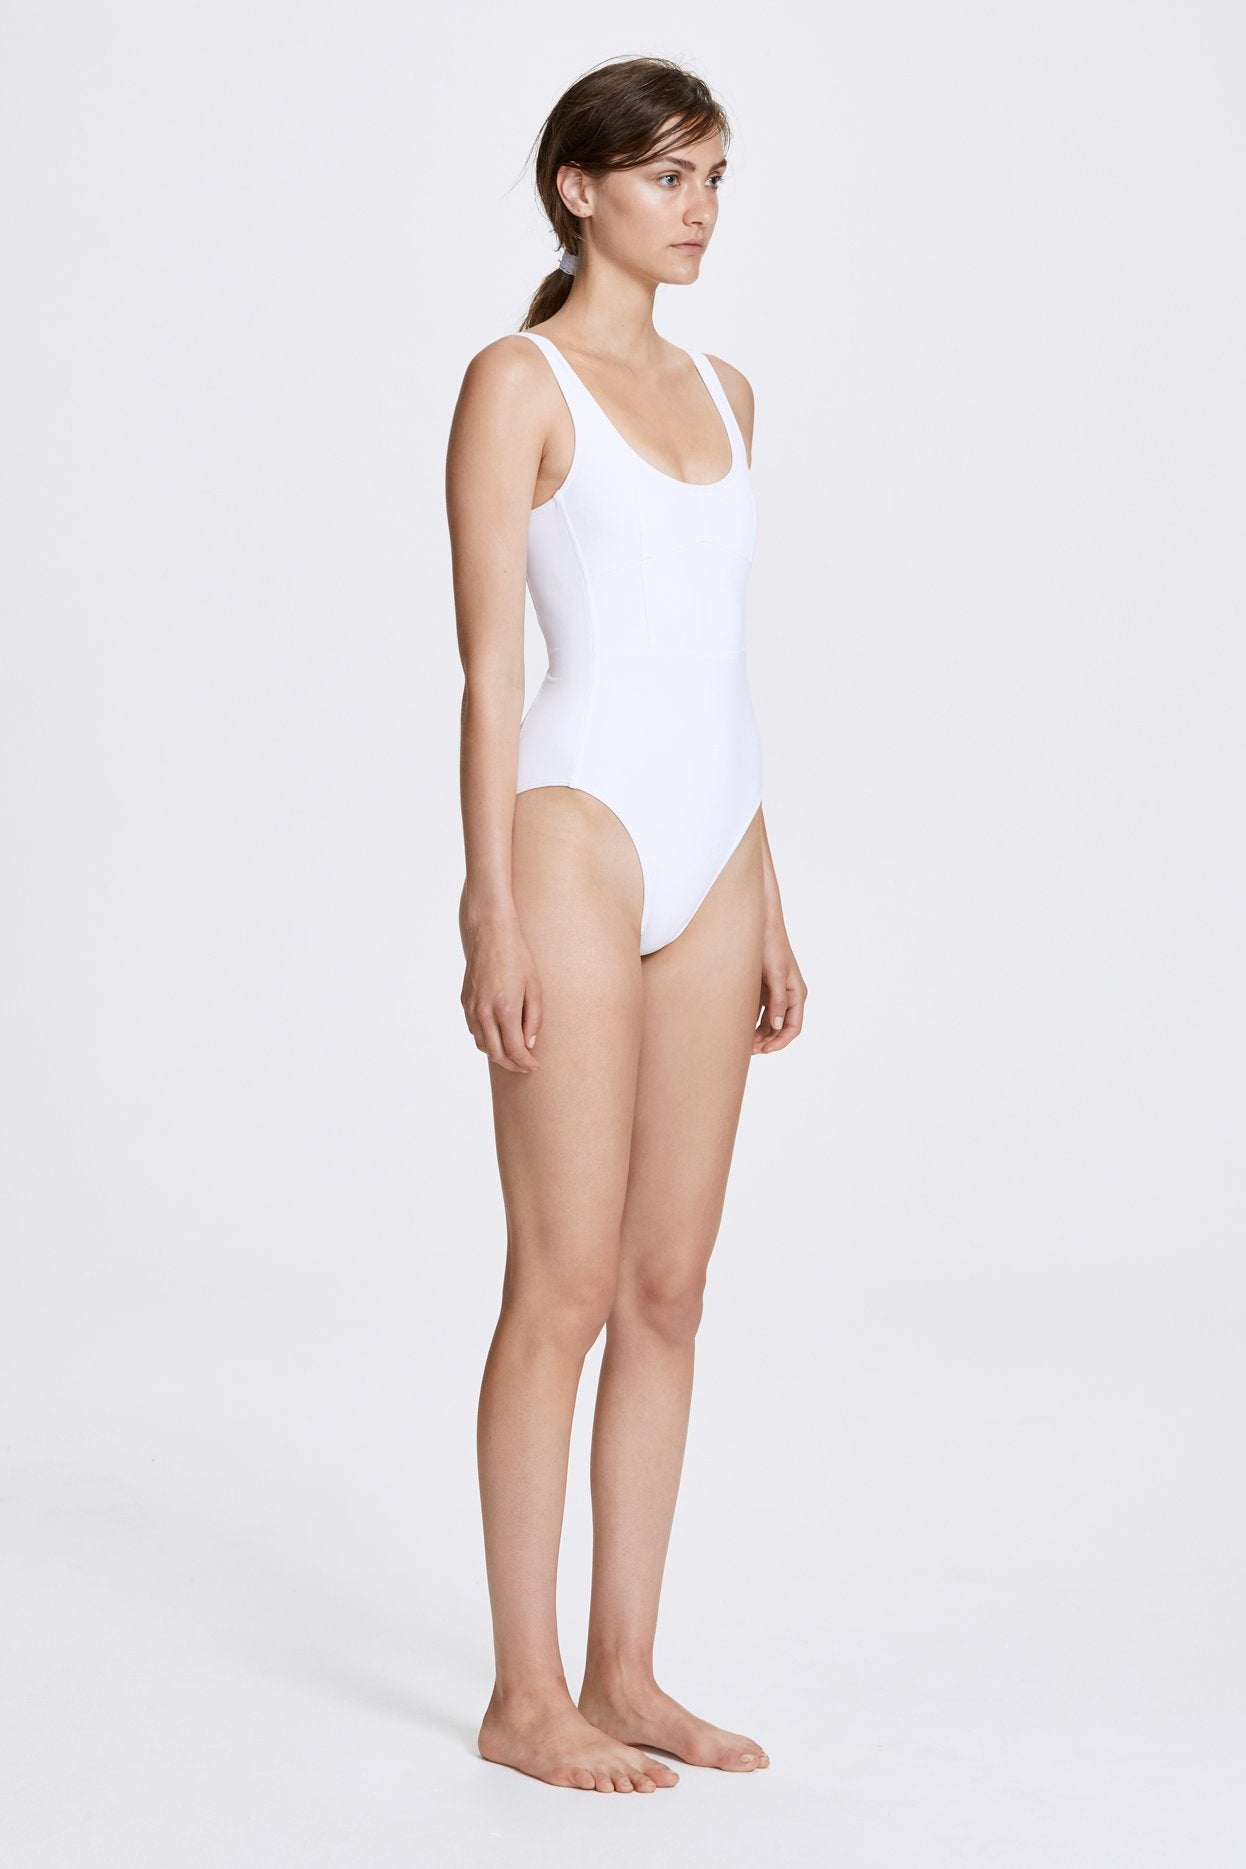 Her Line Marni Swimwear One Piece Milk White Side 1